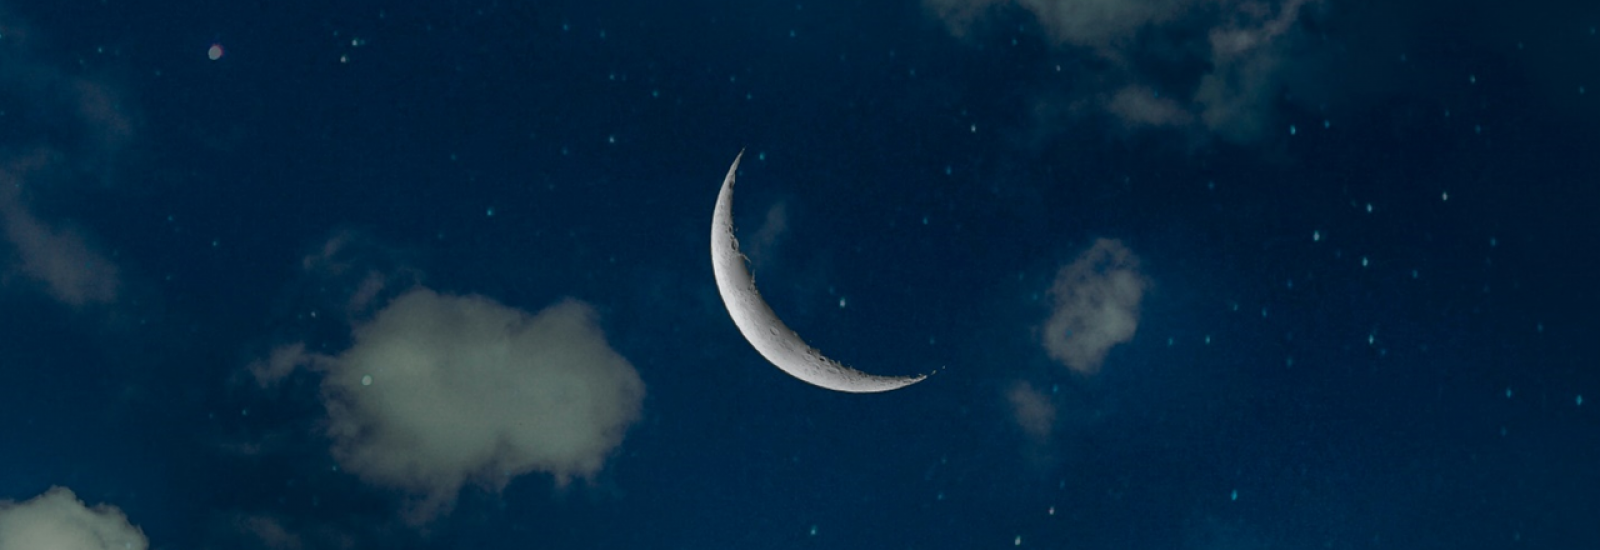 Crescent moon against indigo sky and clouds